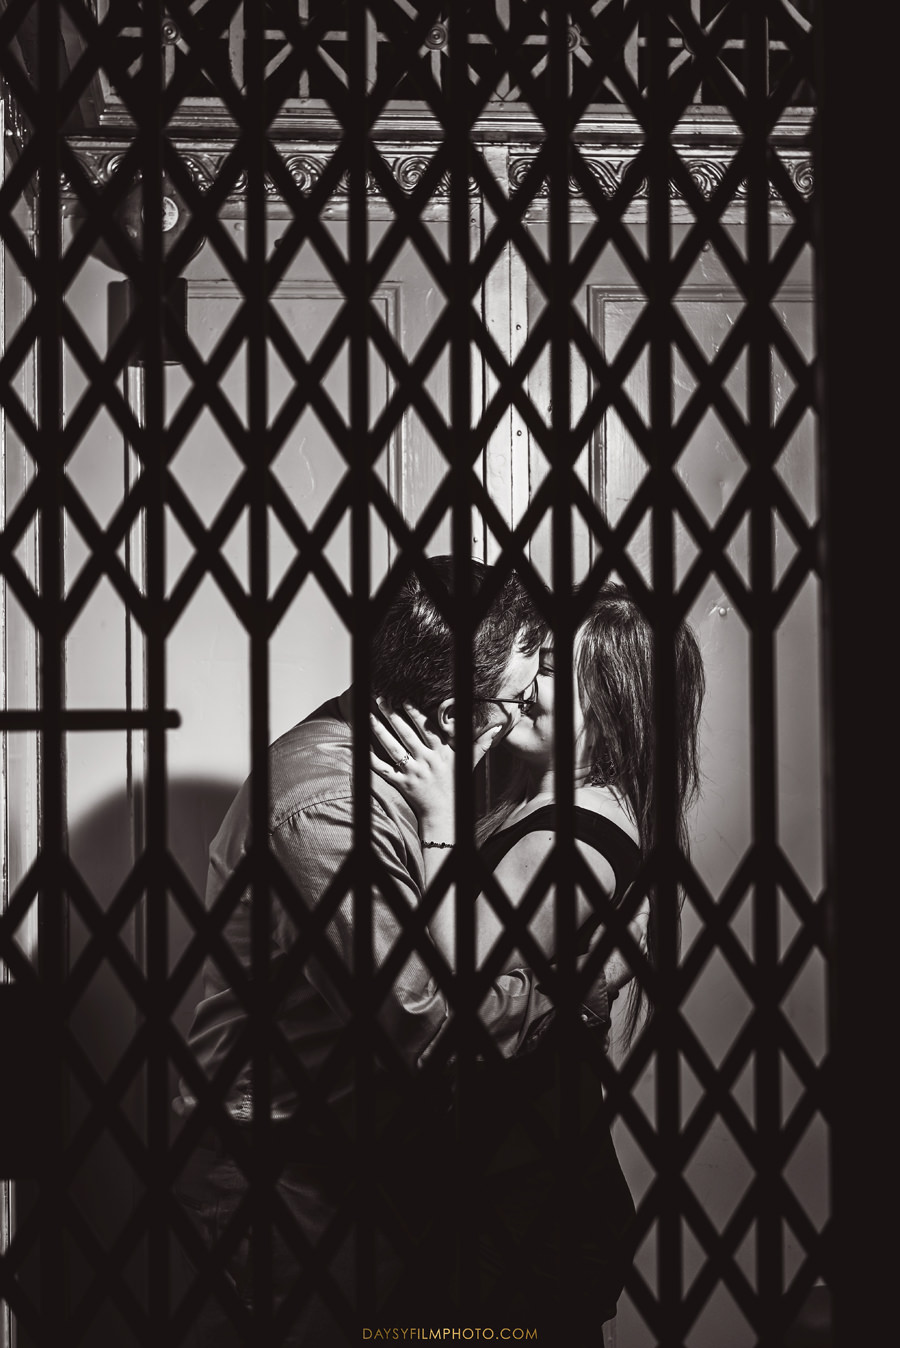 couple kissing at old elevator engagement photo at Bromo Seltzer Arts Tower, in Baltimore MD